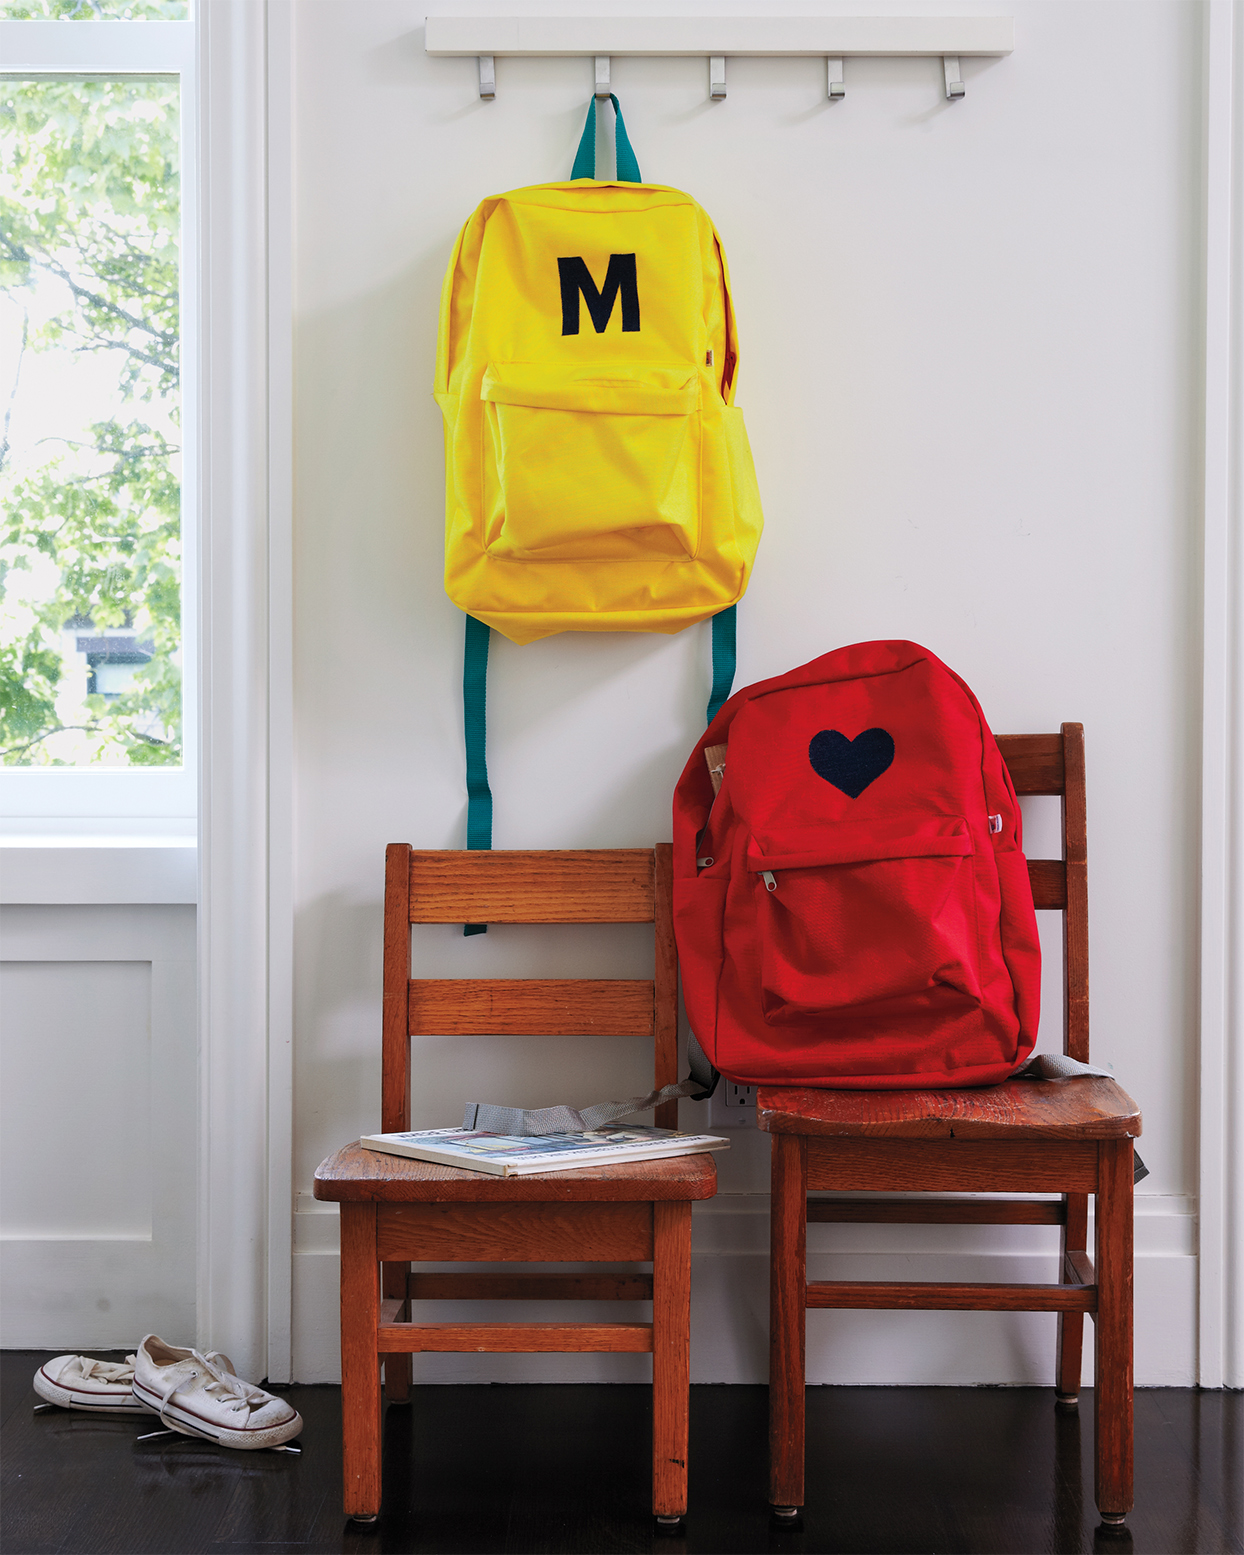 personalized backpacks hanging in a mudroom